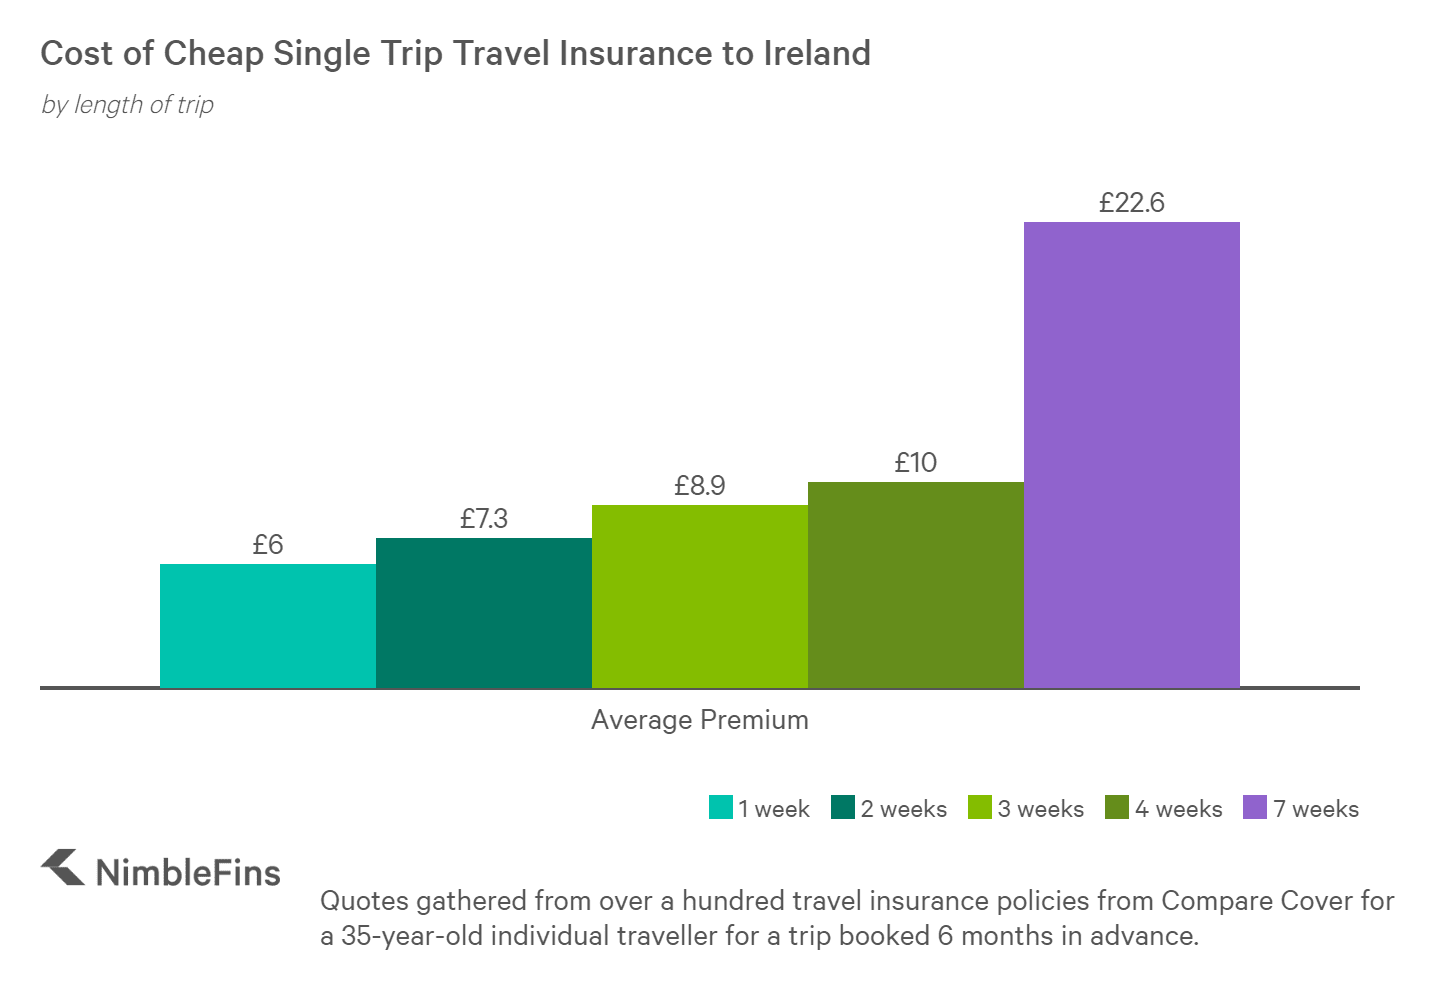 Cost of travel insurance from UK to Ireland by trip length in weeks